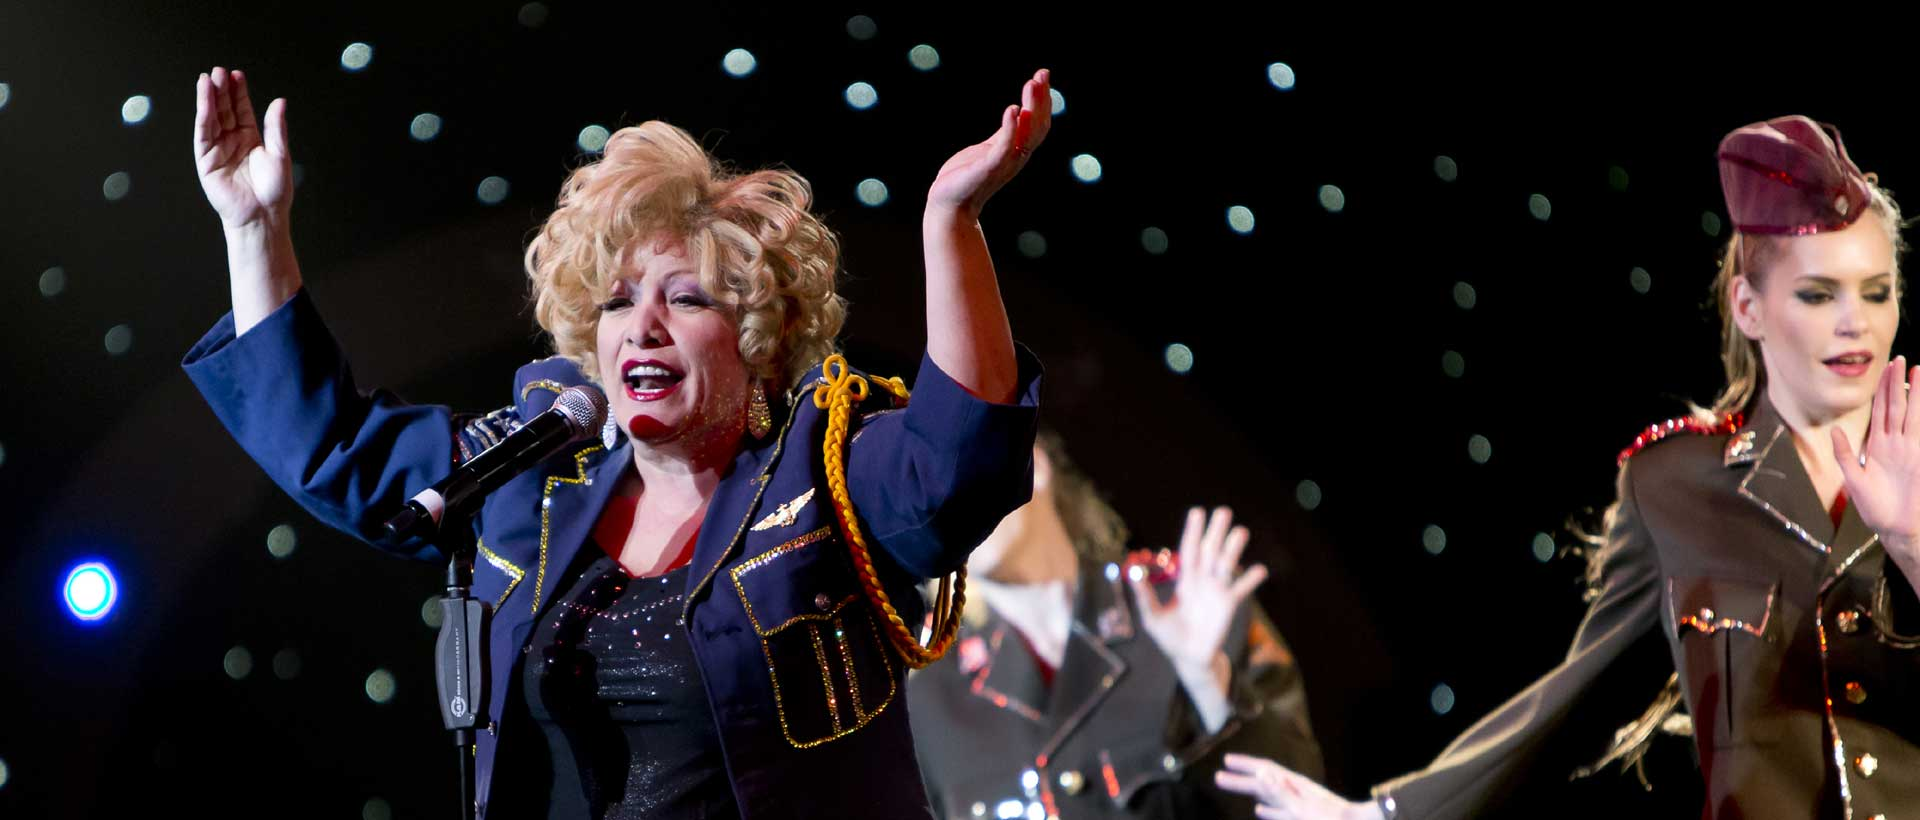 Stars-in-Concert_Berlin_Bette_Midler